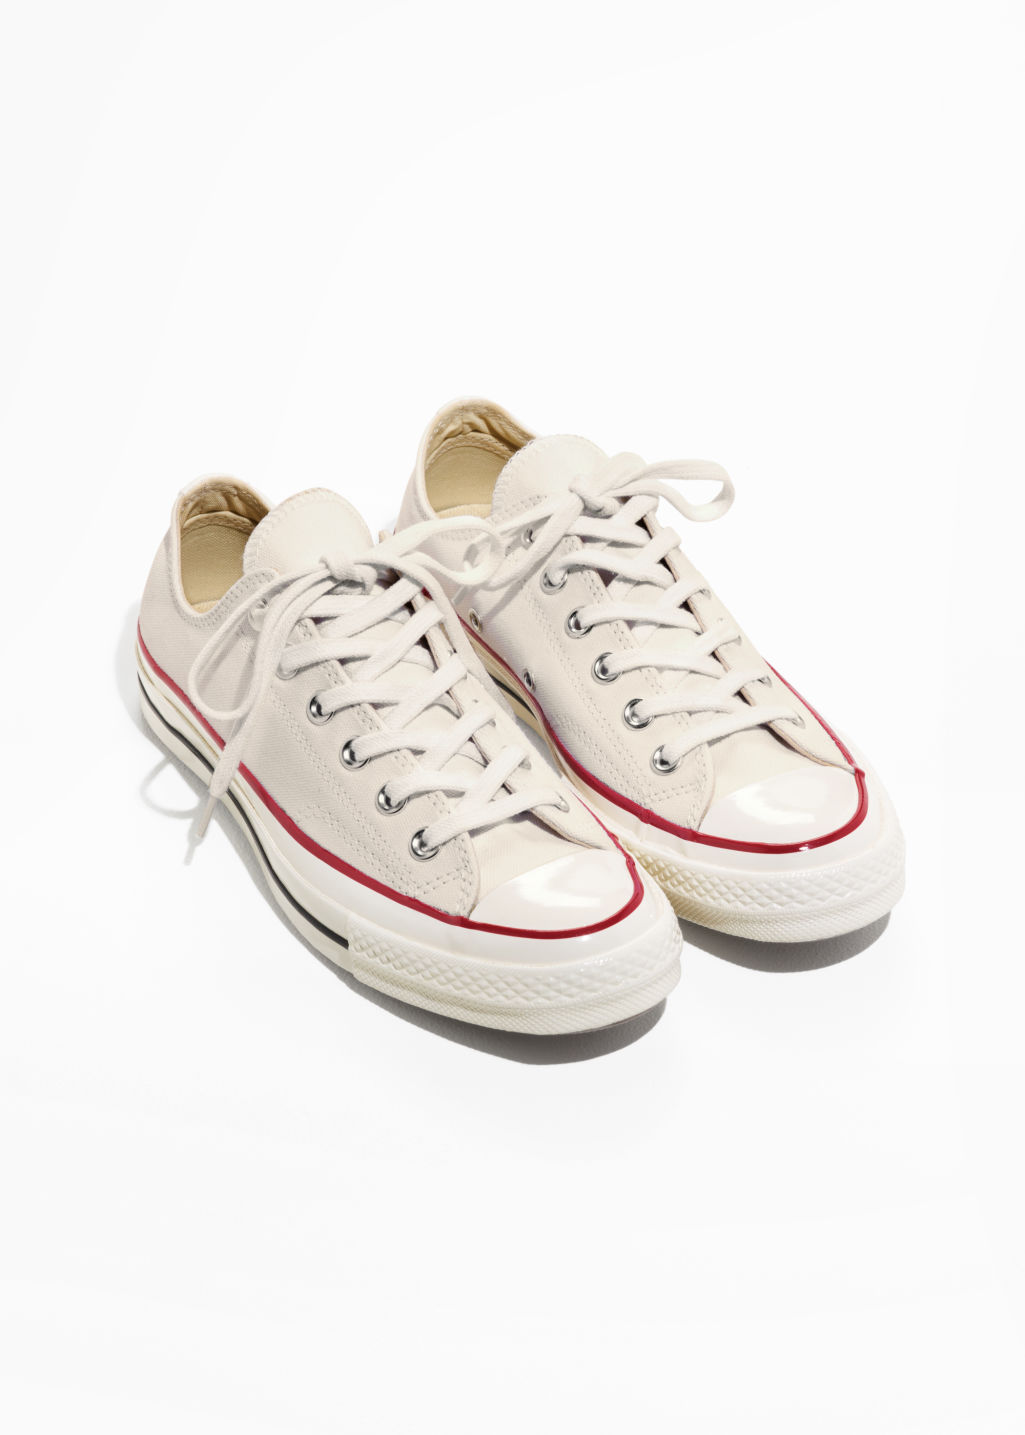 651e3e9371e9 Chuck Taylor All Star 70 Low - White - Converse -   Other Stories